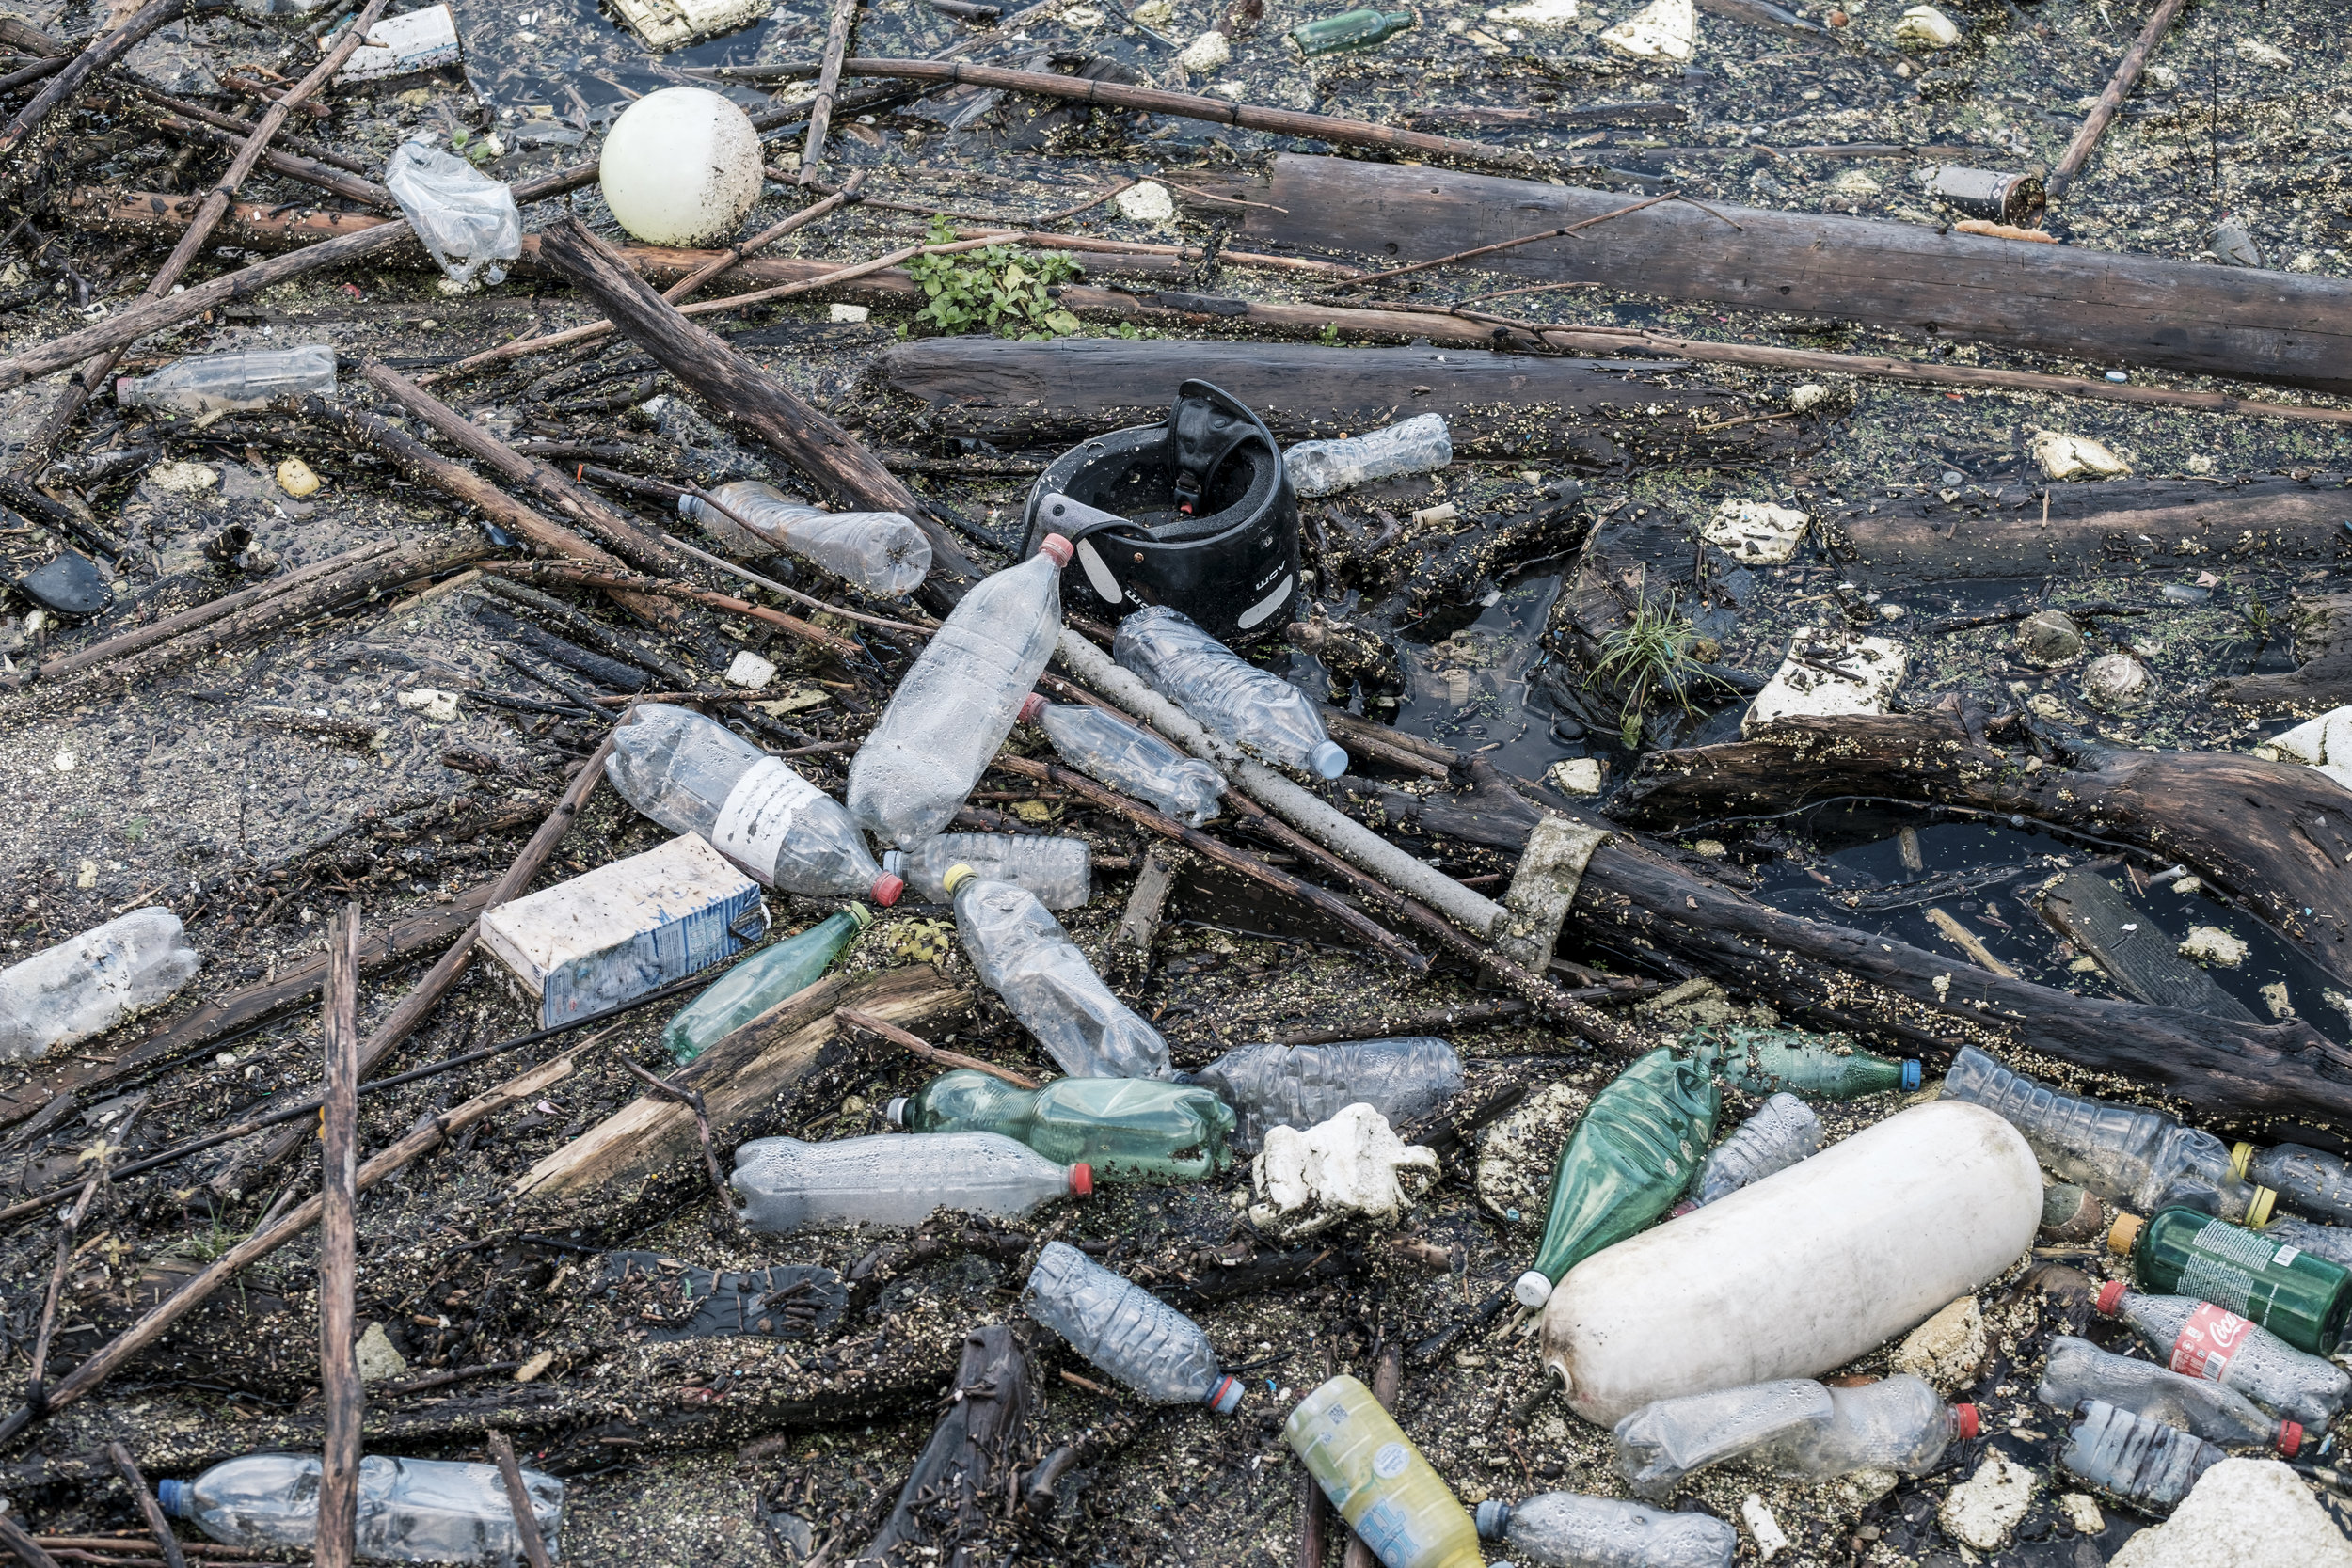 In northwest Washington alone over 2.5 million pounds of litter are dumped in a year, and a lot of that trash ends up in our rivers.